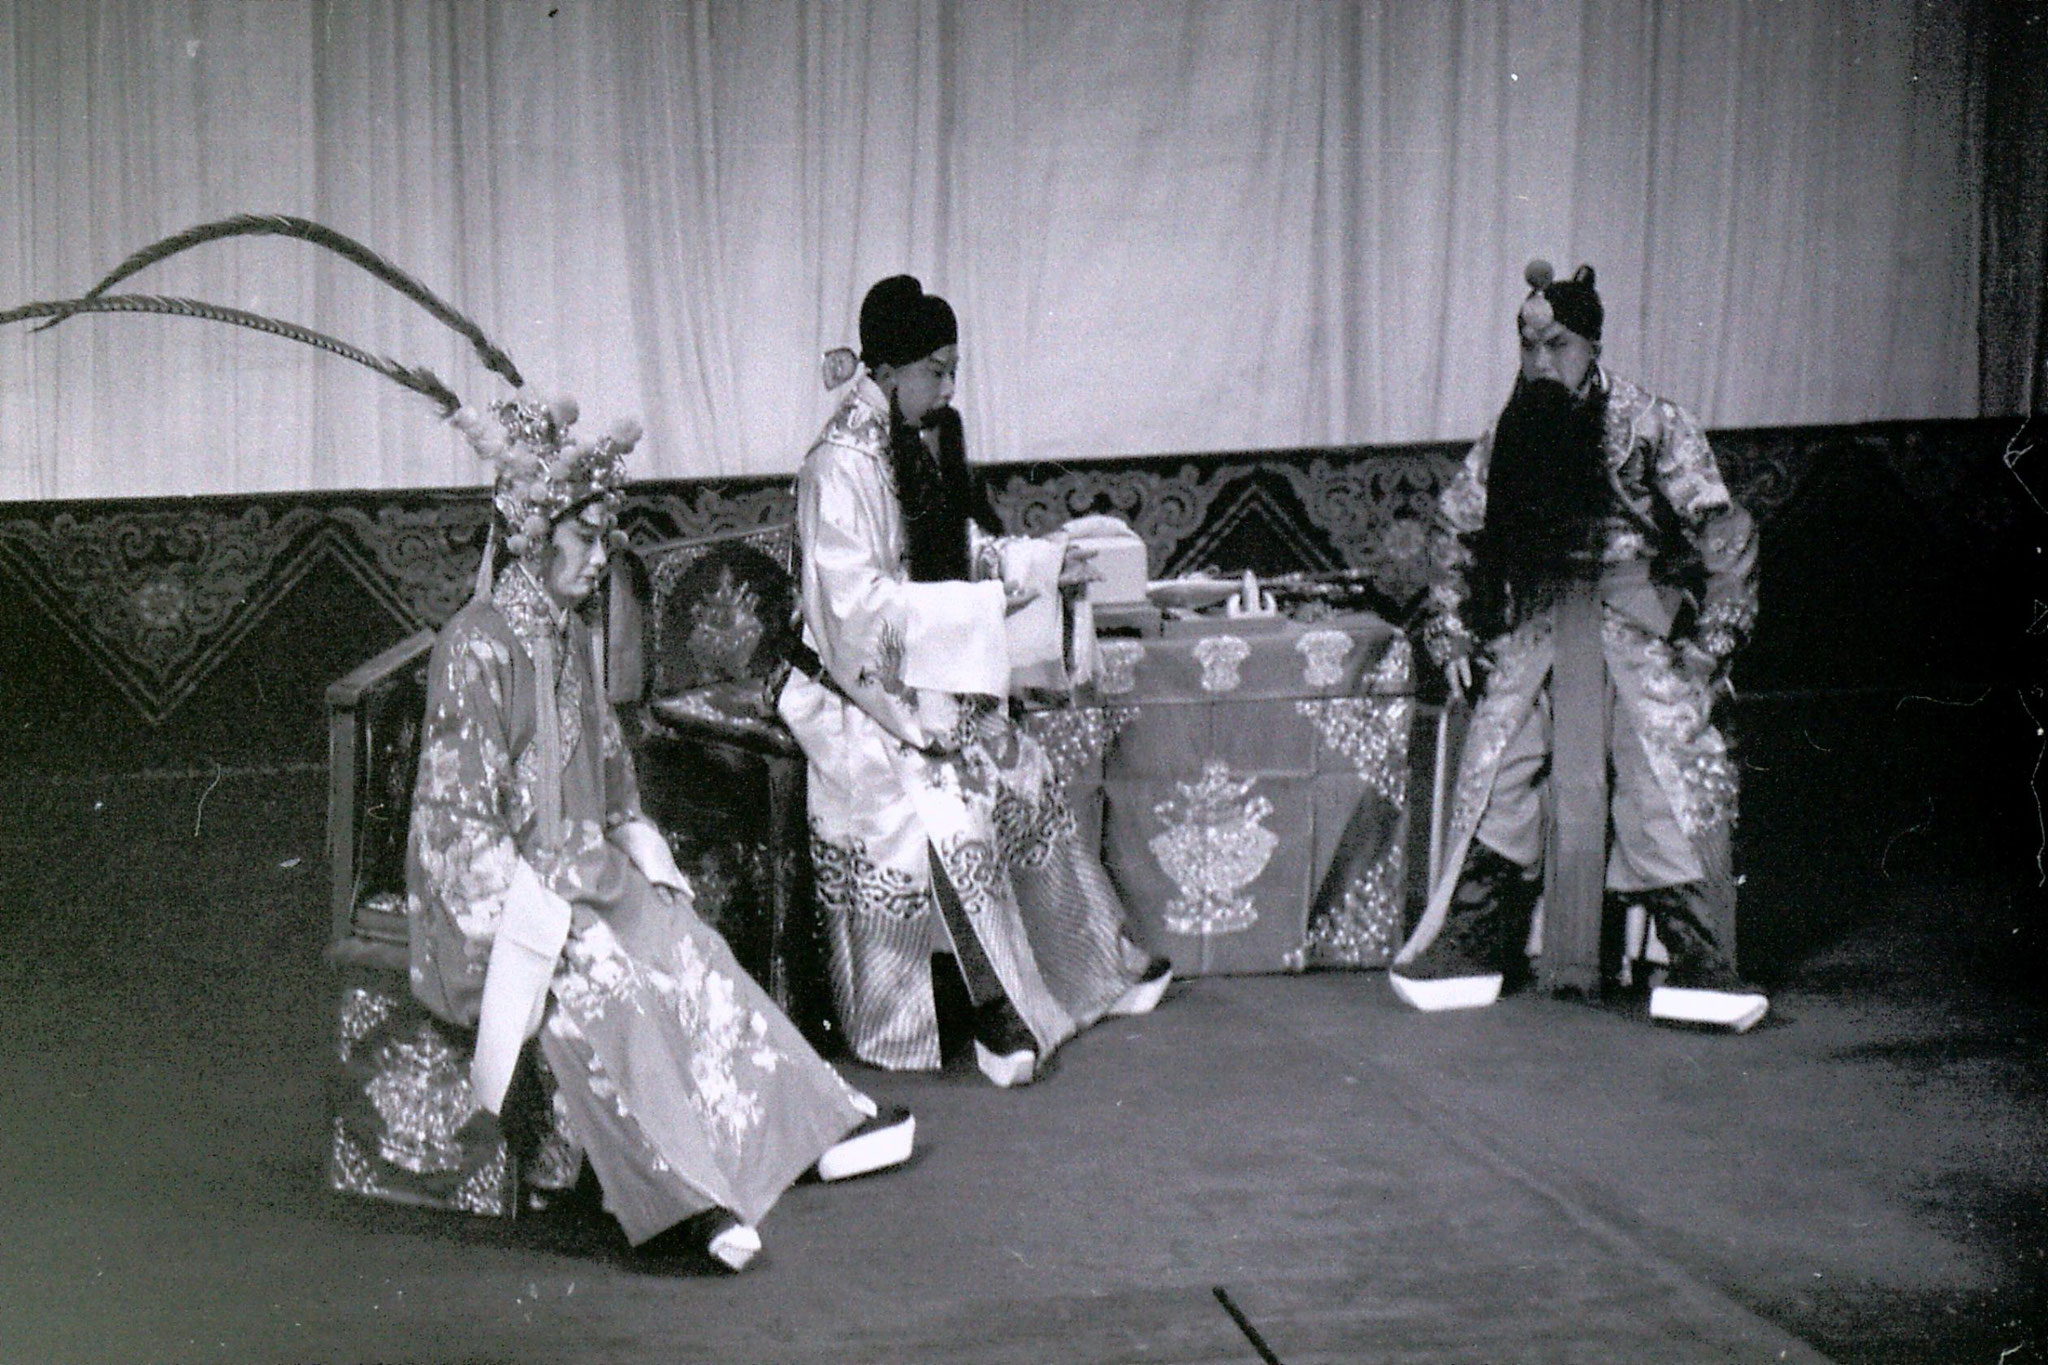 17/3/1989: 5: Chang'an Theatre